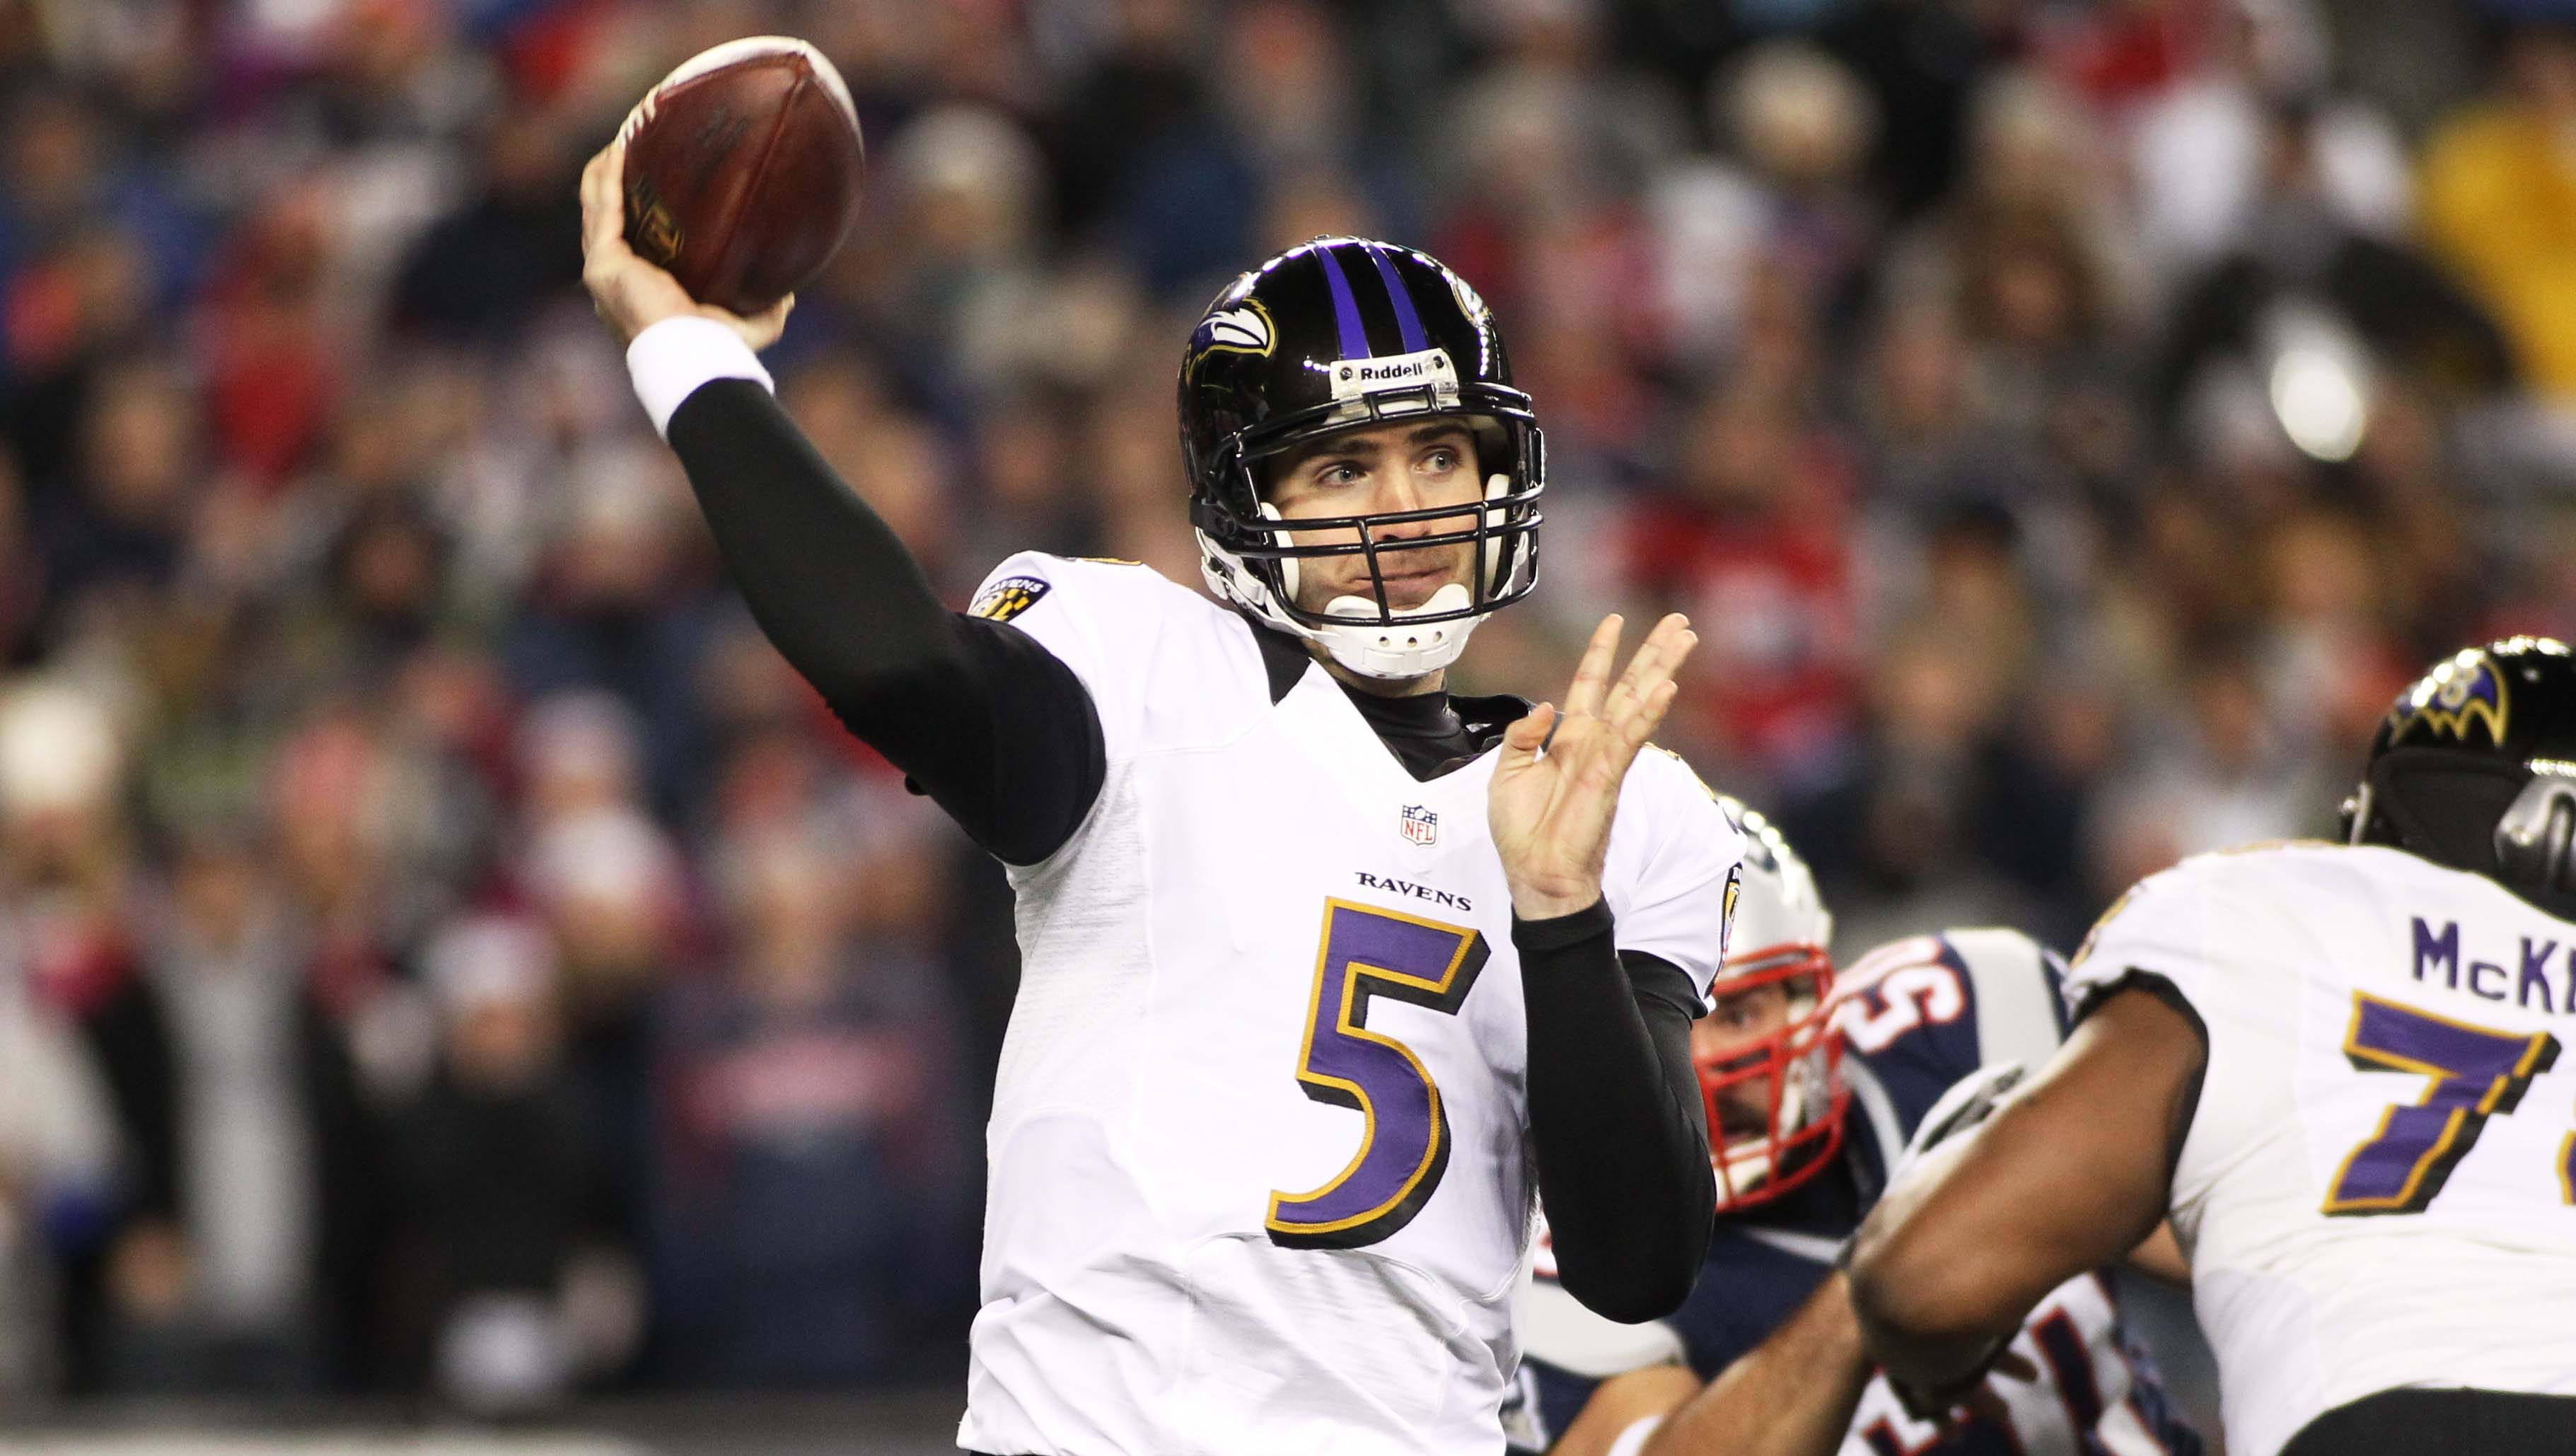 16. Joe Flacco, Baltimore Ravens